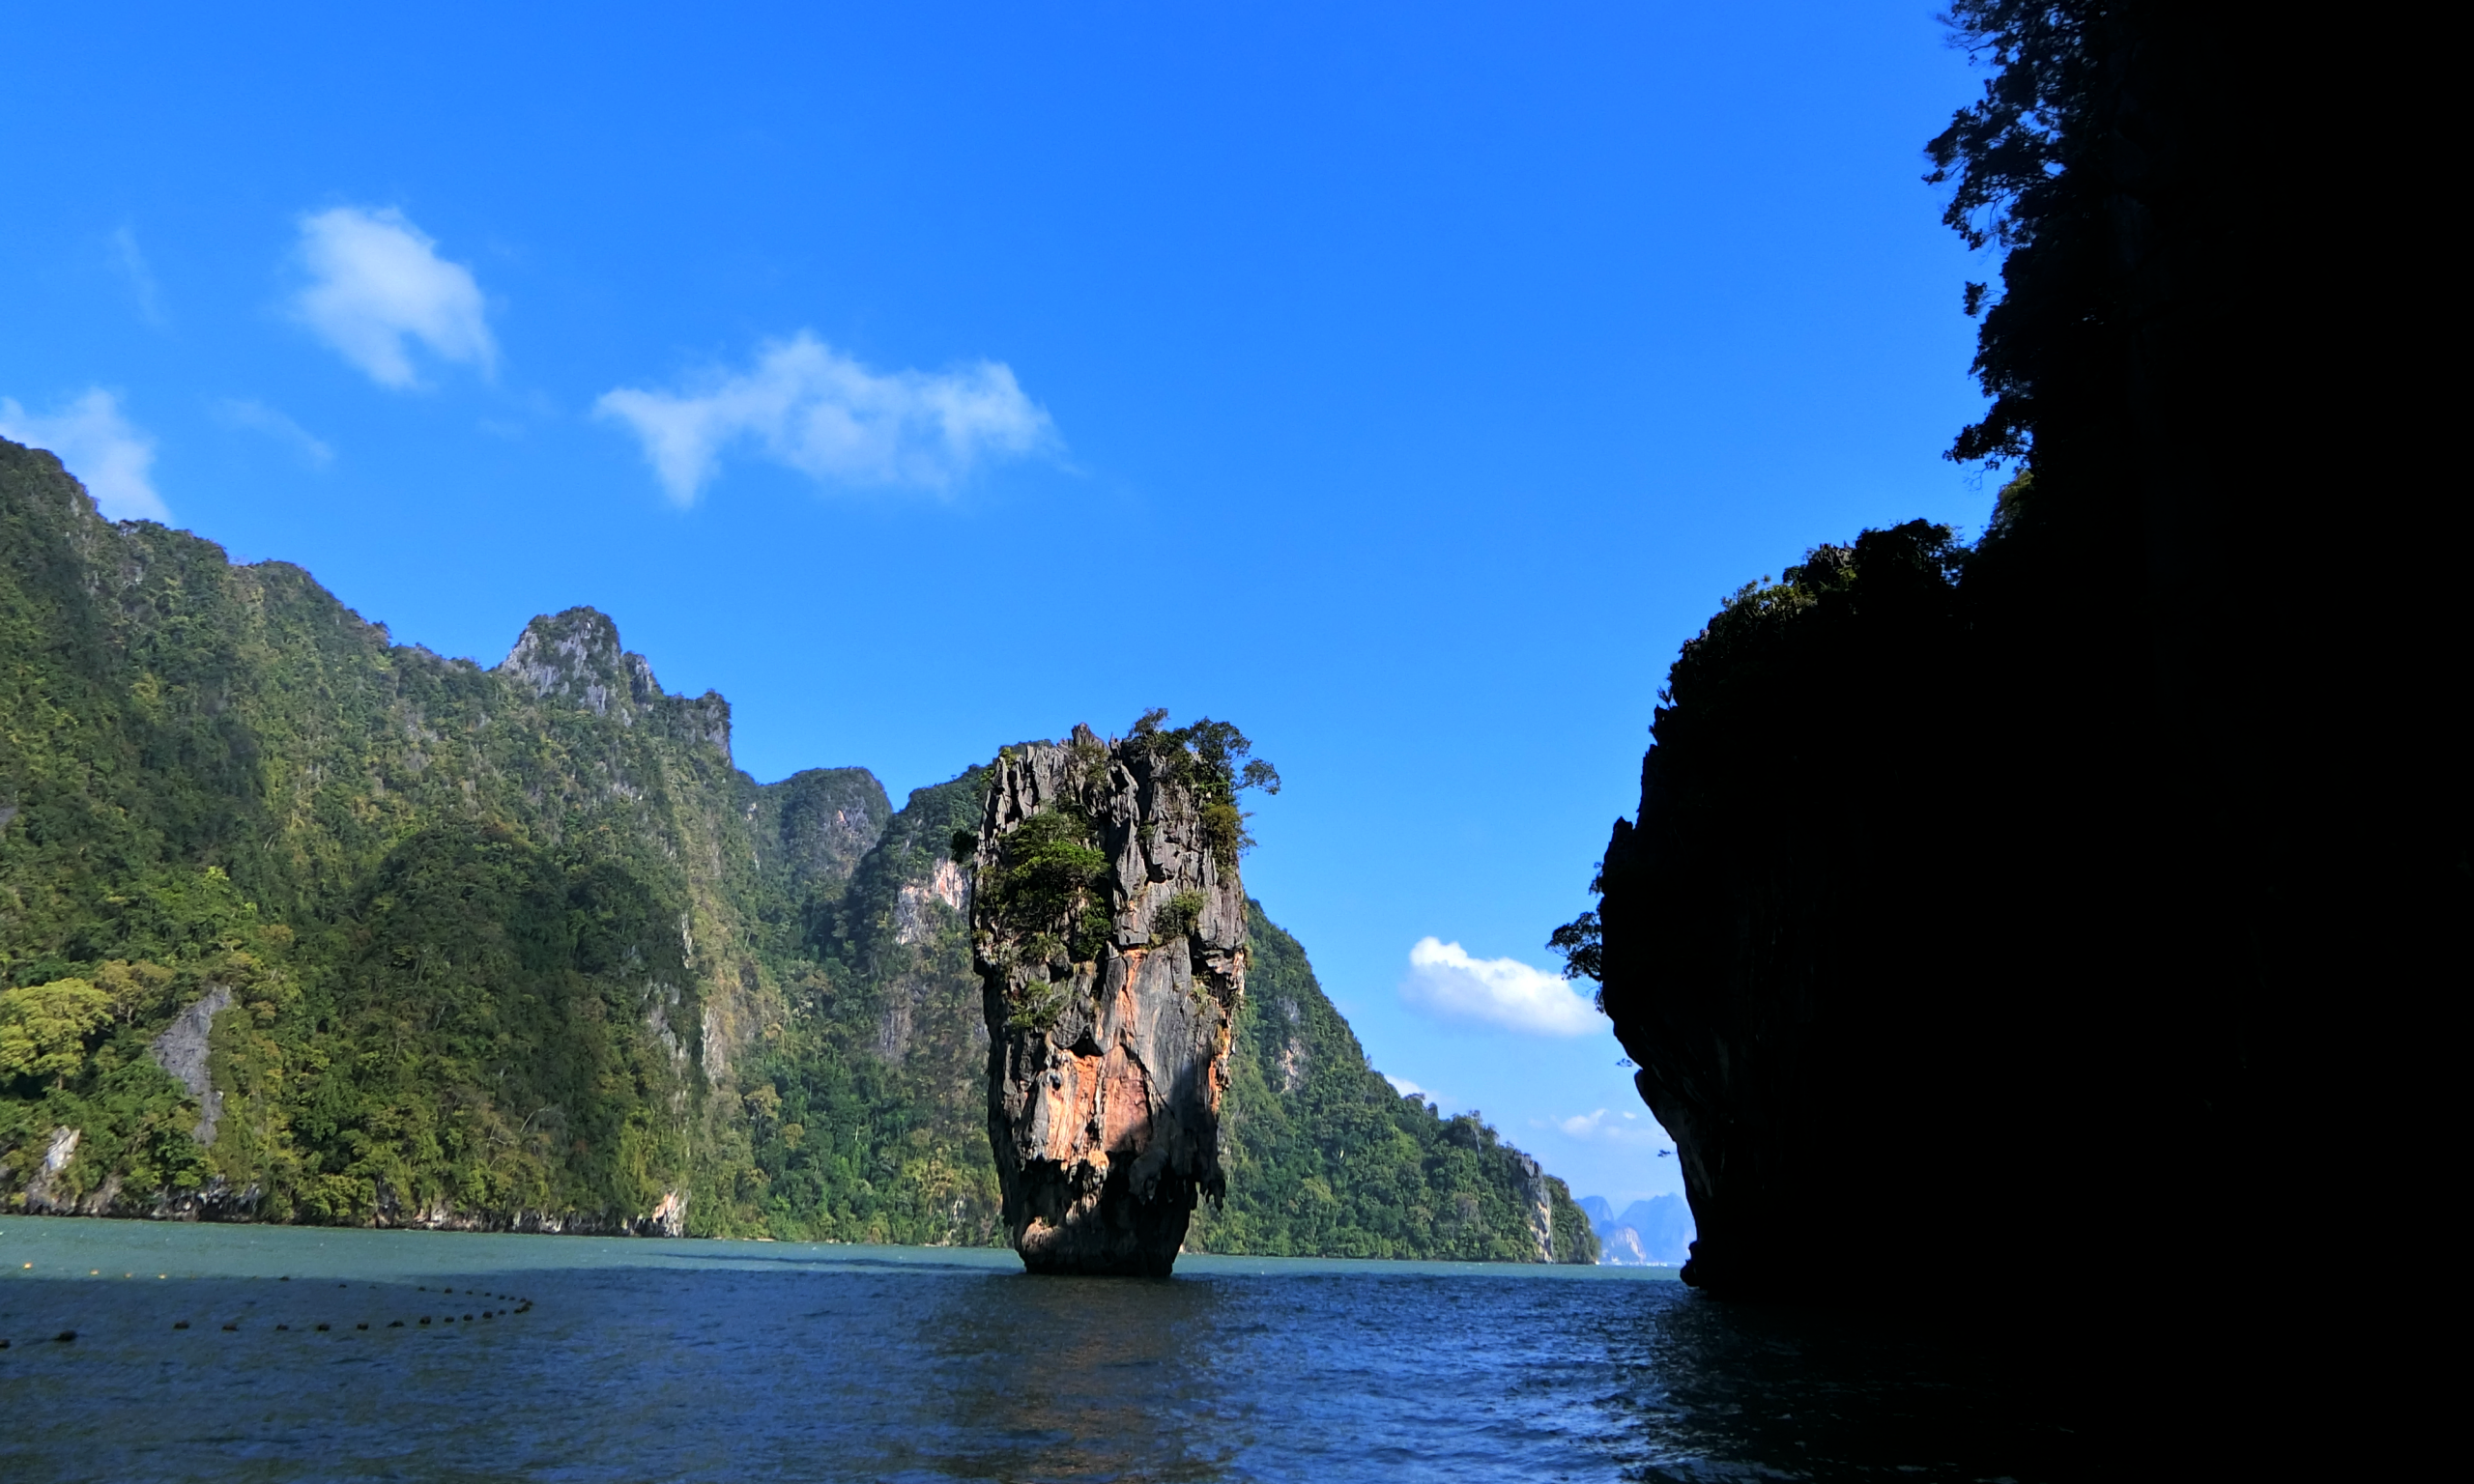 James Bond Island Phang Nga Bay Tour By Big Boat Best Price Offer